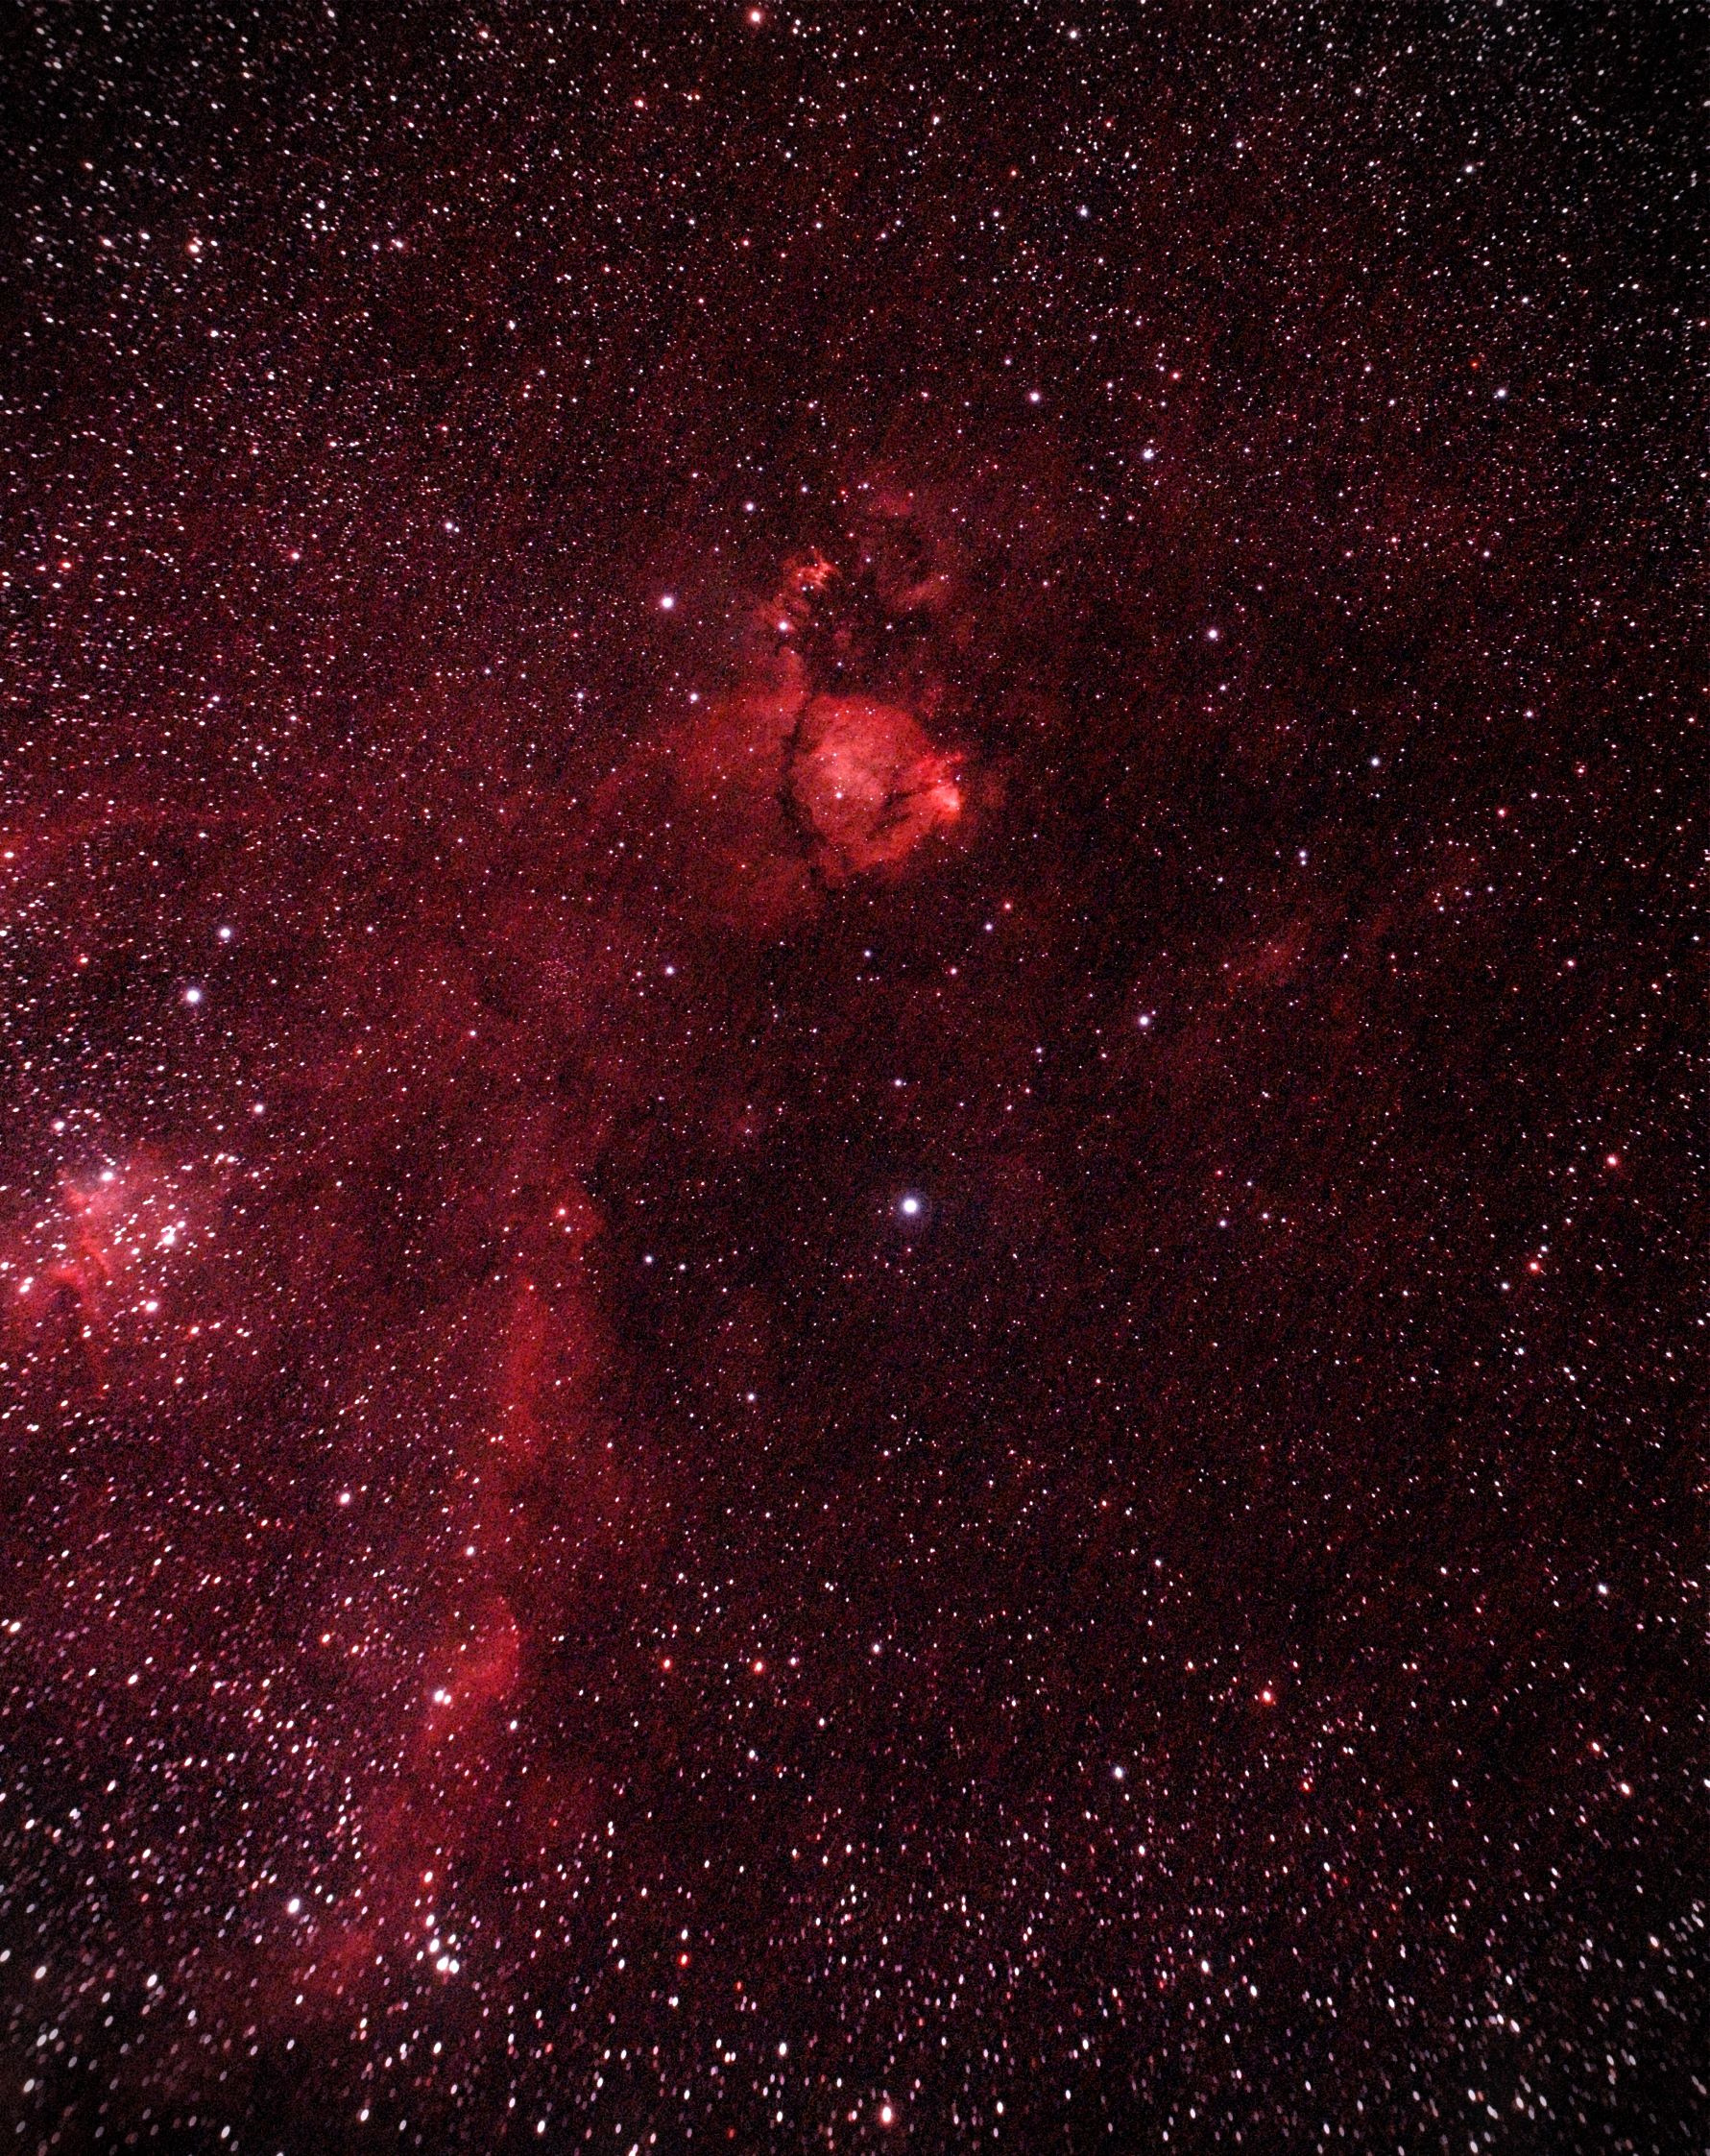 IC1795_Siril_01Red.jpg